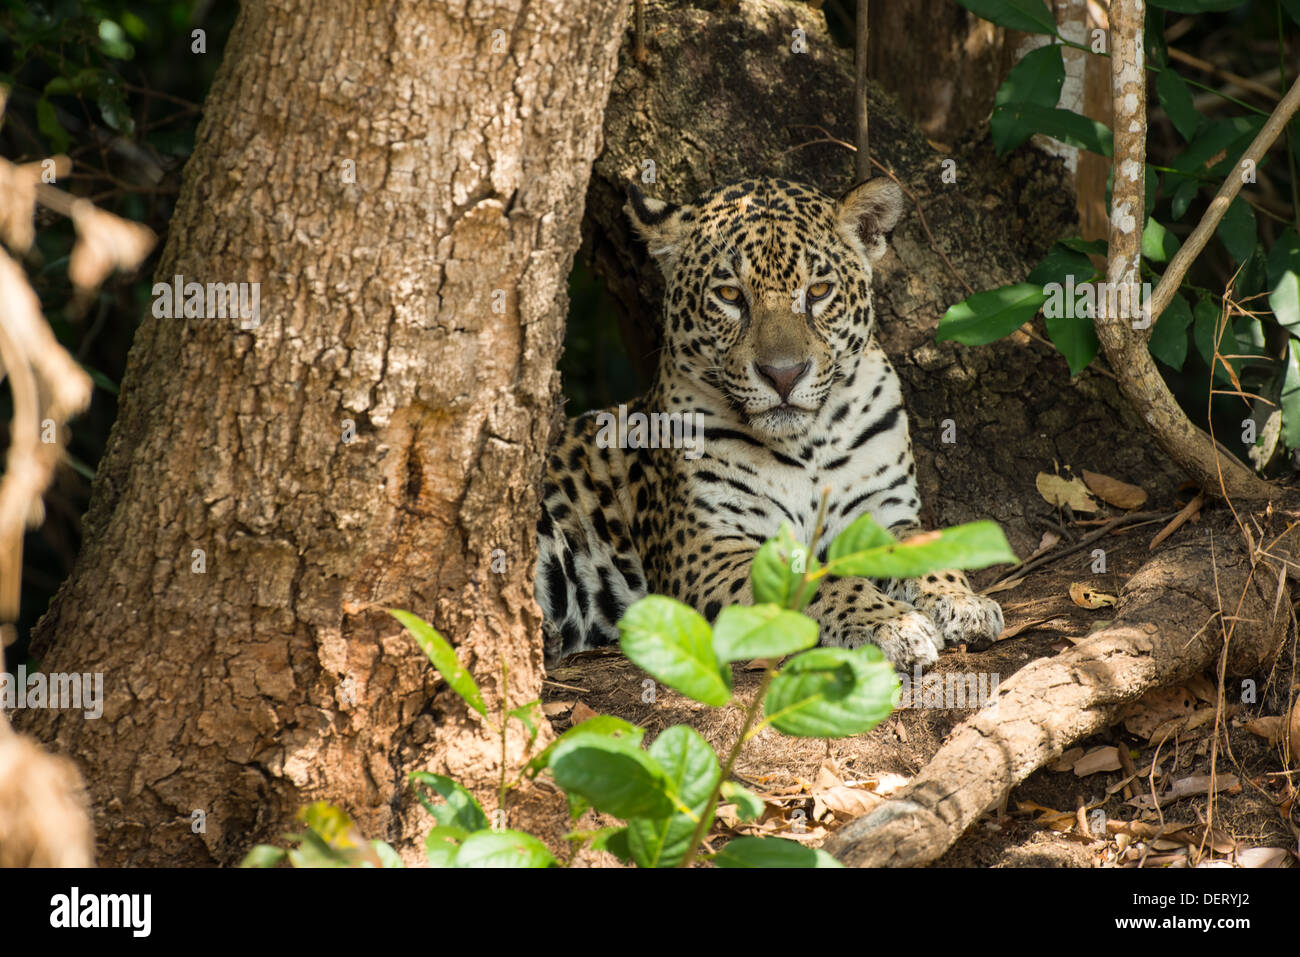 Jaguar resting on the riverbank in the Pantanal, Brazil. - Stock Image